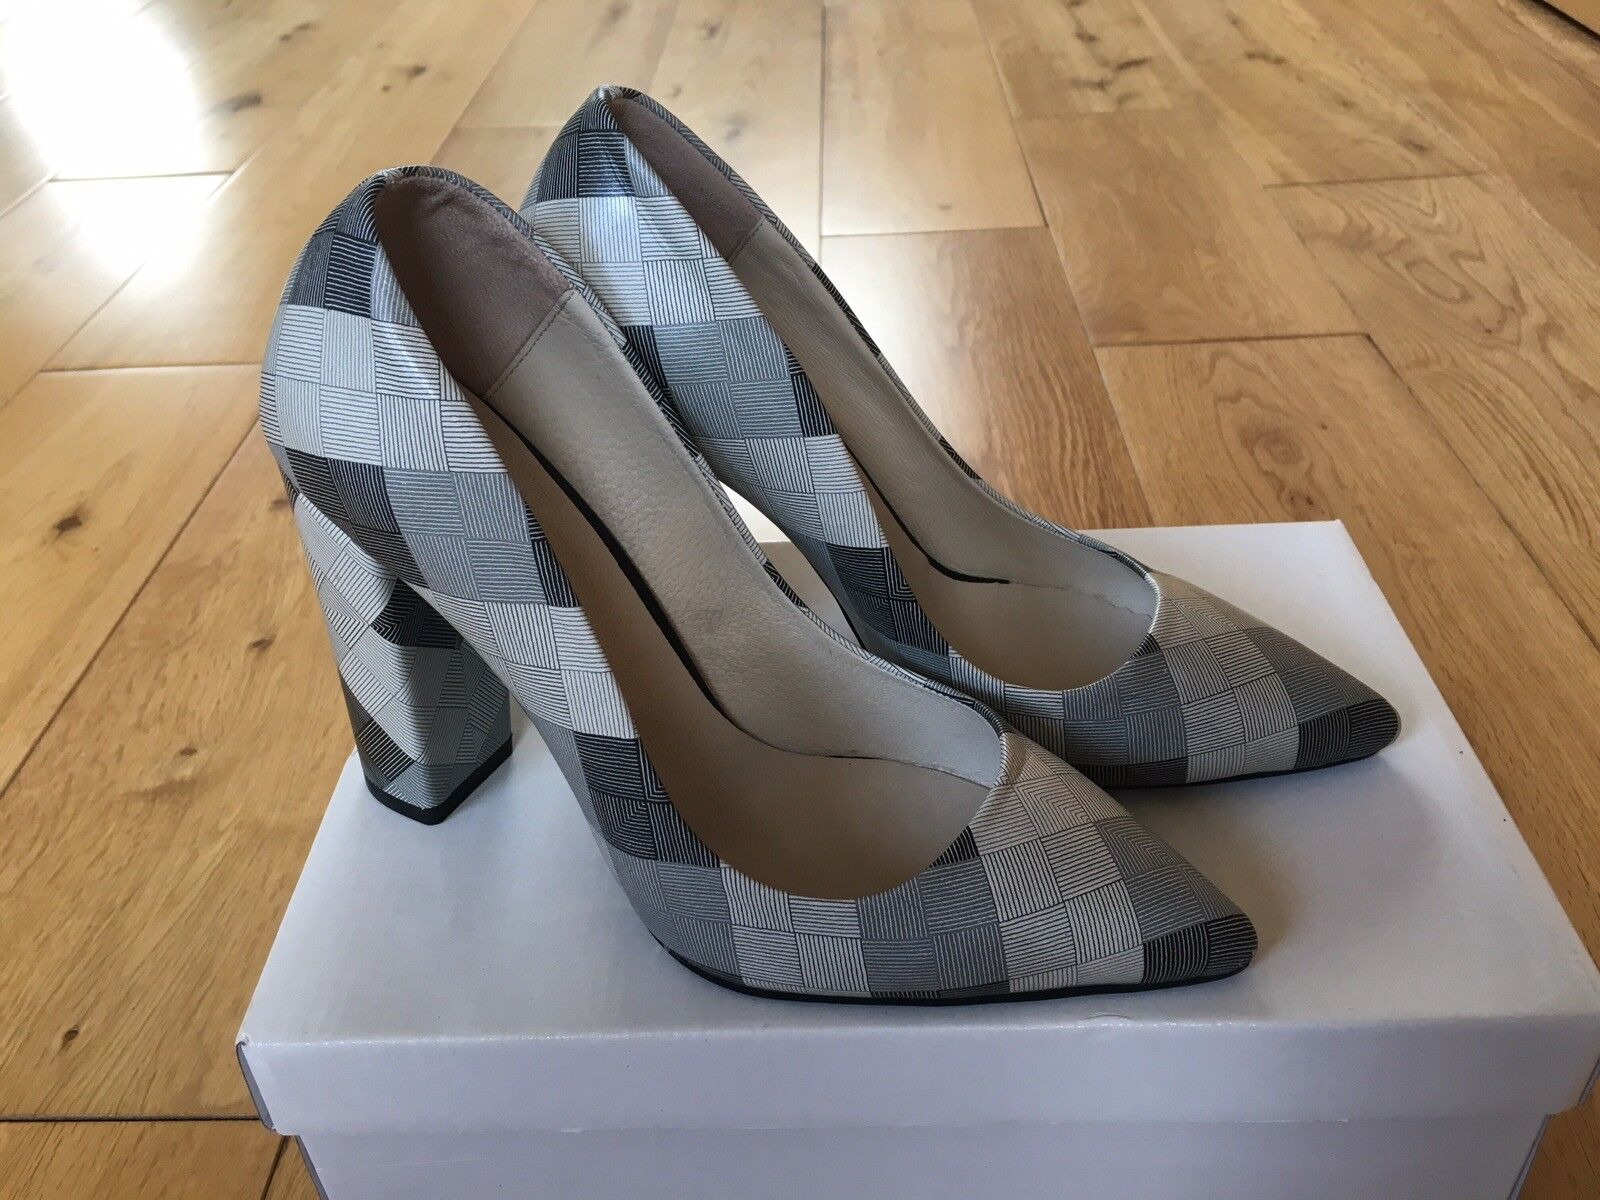 LOS OJO GREY HEEL CHECKERBOARD LEATHER Schuhe BLOCK HEEL GREY COURT Schuhe 4b7f7c